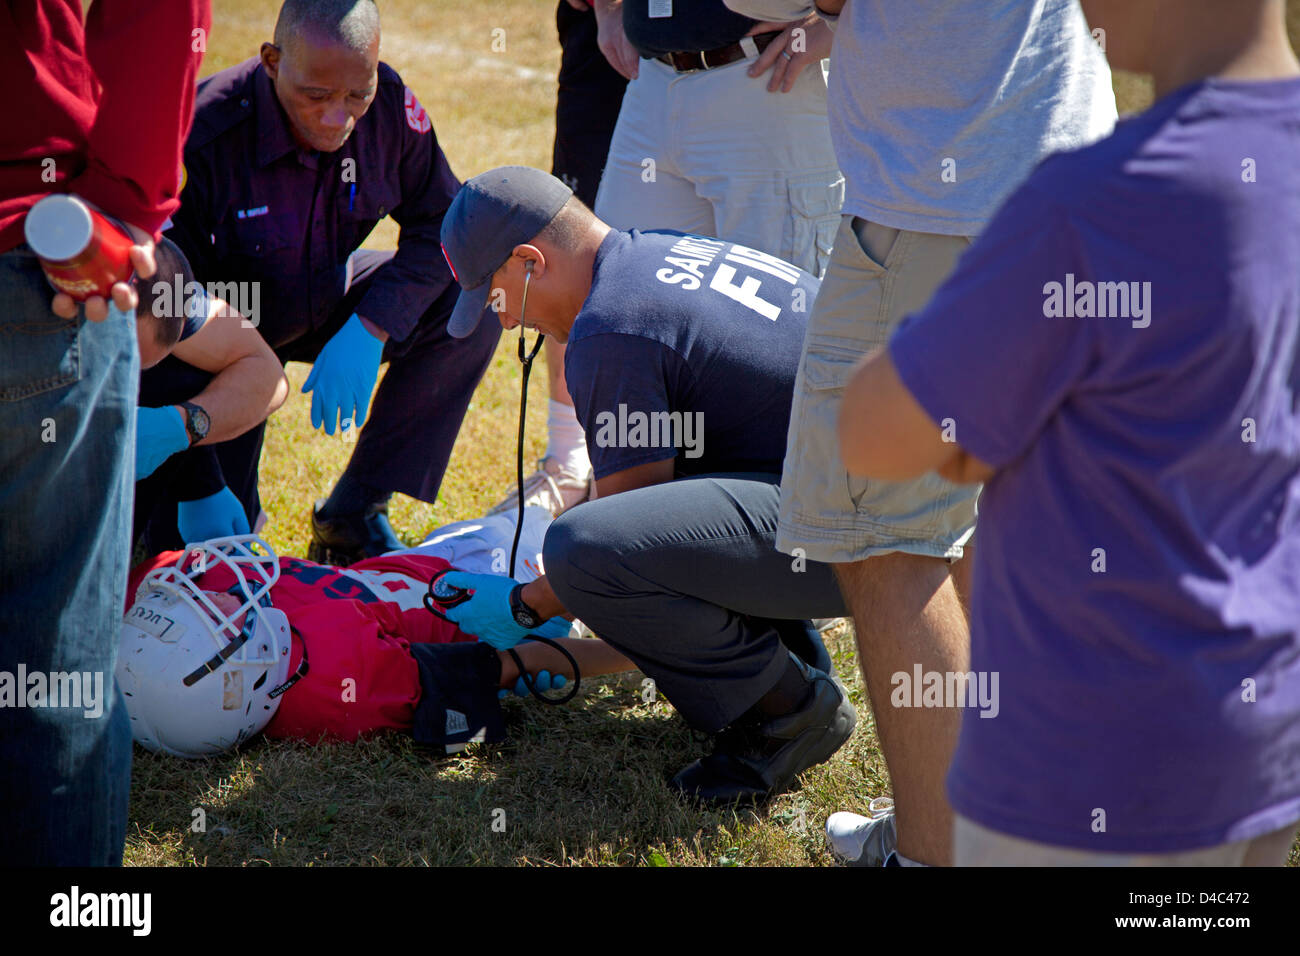 Paramedic checking blood pressure of injured football player with possible concussion. Conway Park St Paul Minnesota - Stock Image